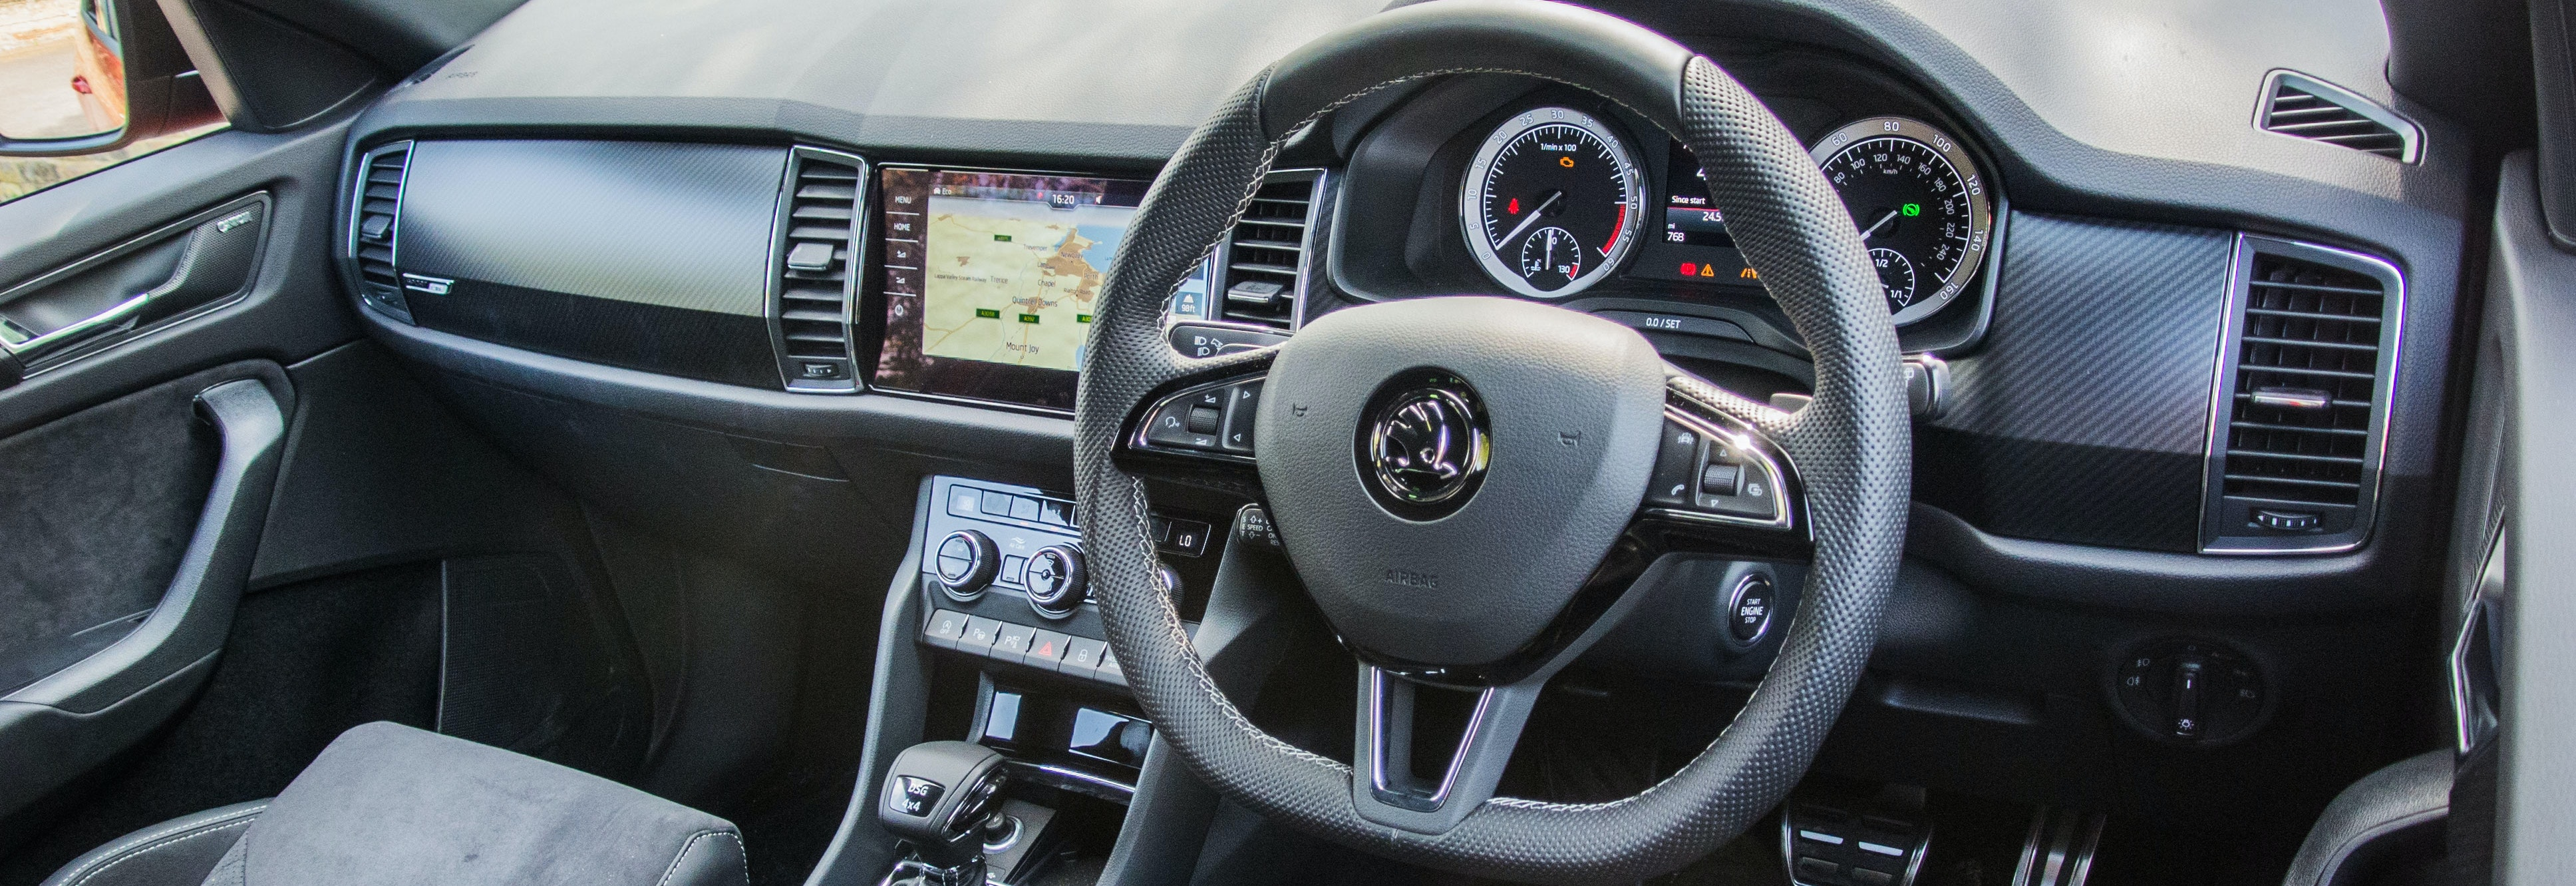 2018 skoda kodiaq interior dashboard